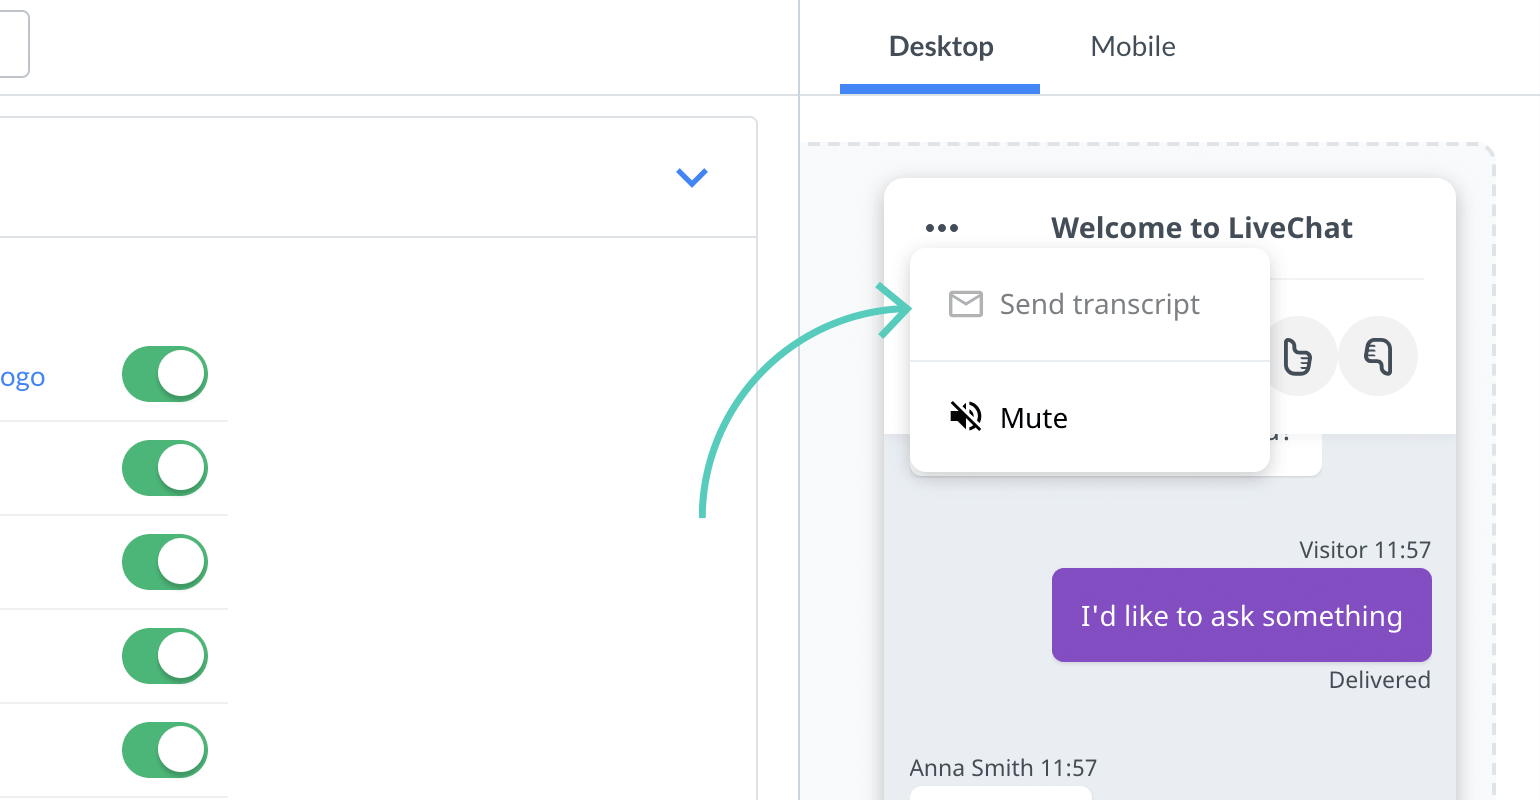 Chat widget configurator: Send transcript